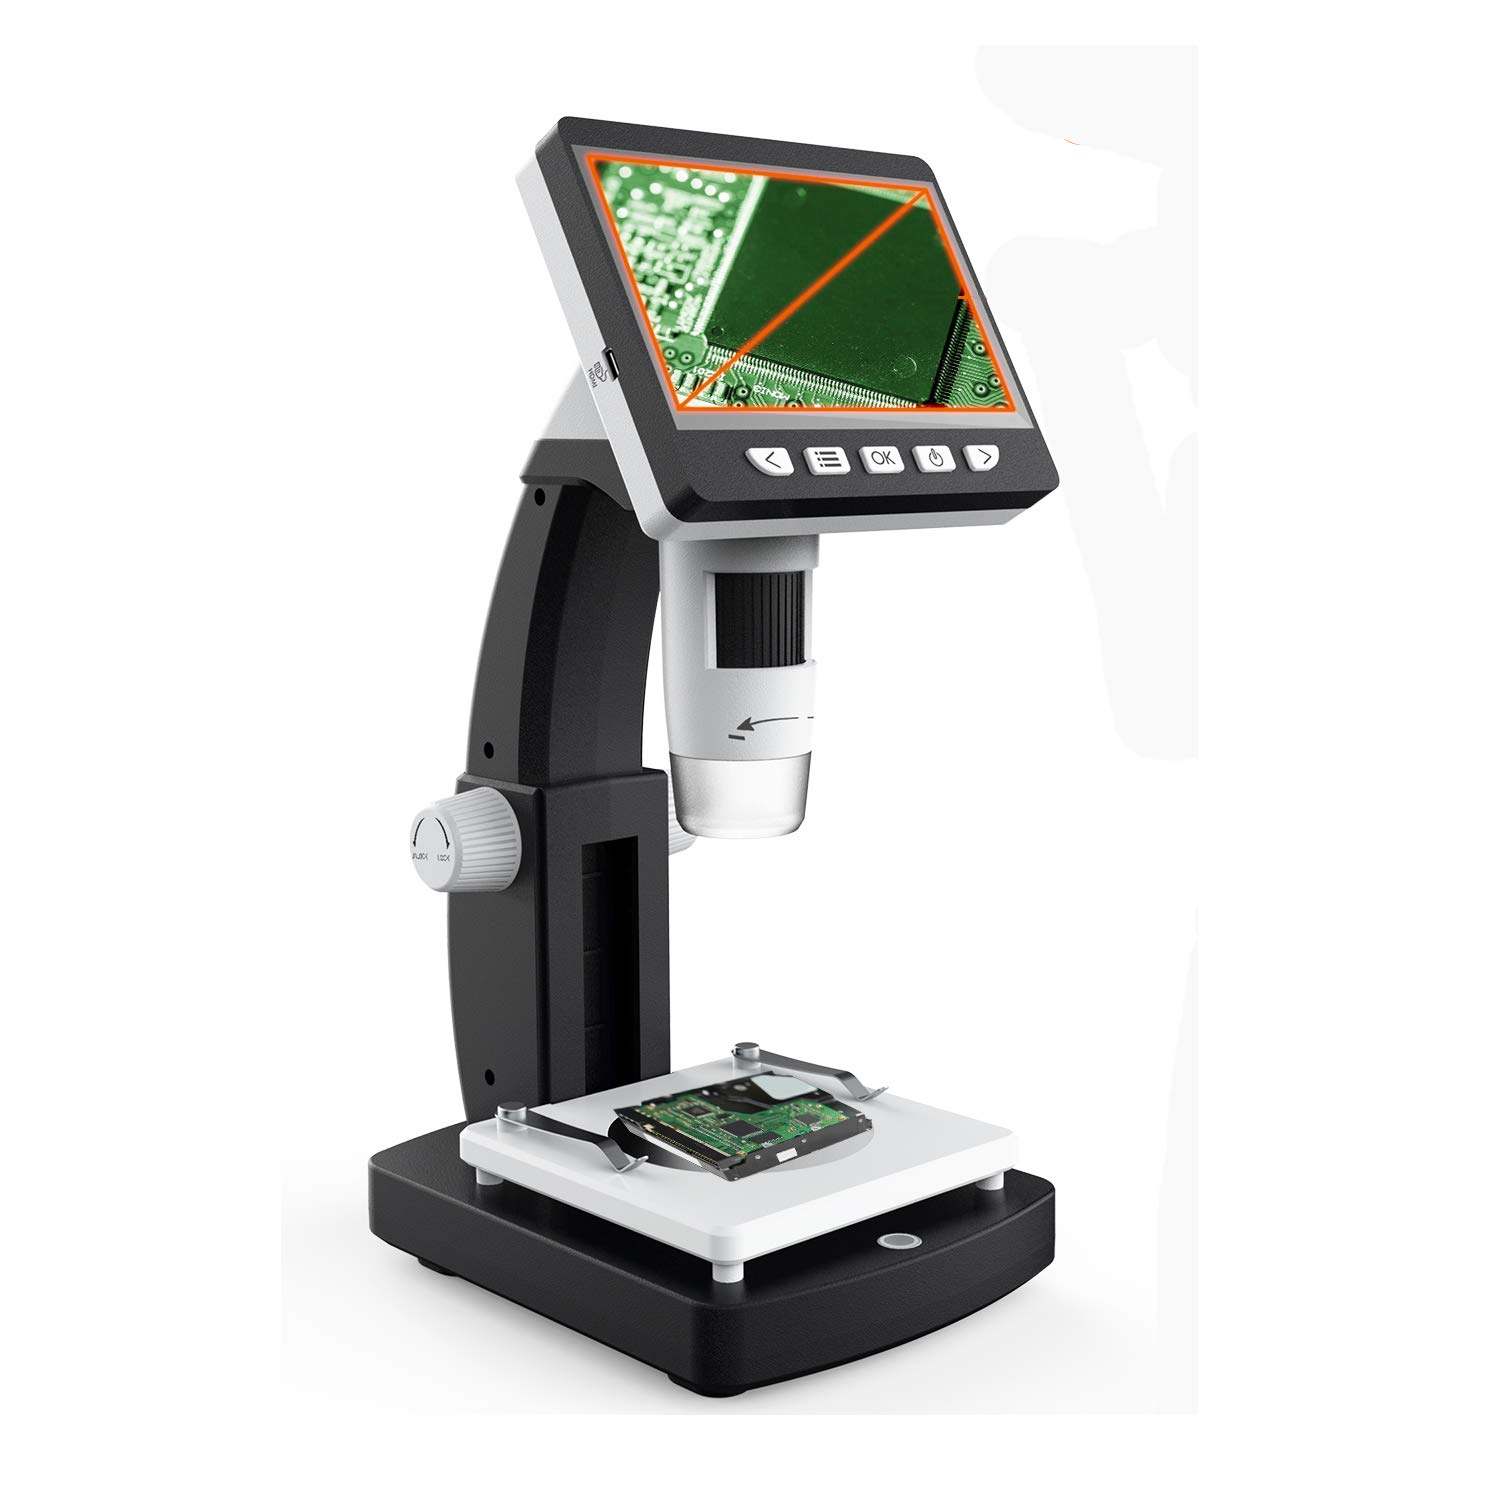 LCD Digital Microscope, YINAMA 4.3 inch 50X-1000X Magnification Zoom 1080P 2.0 Megapixels Camera